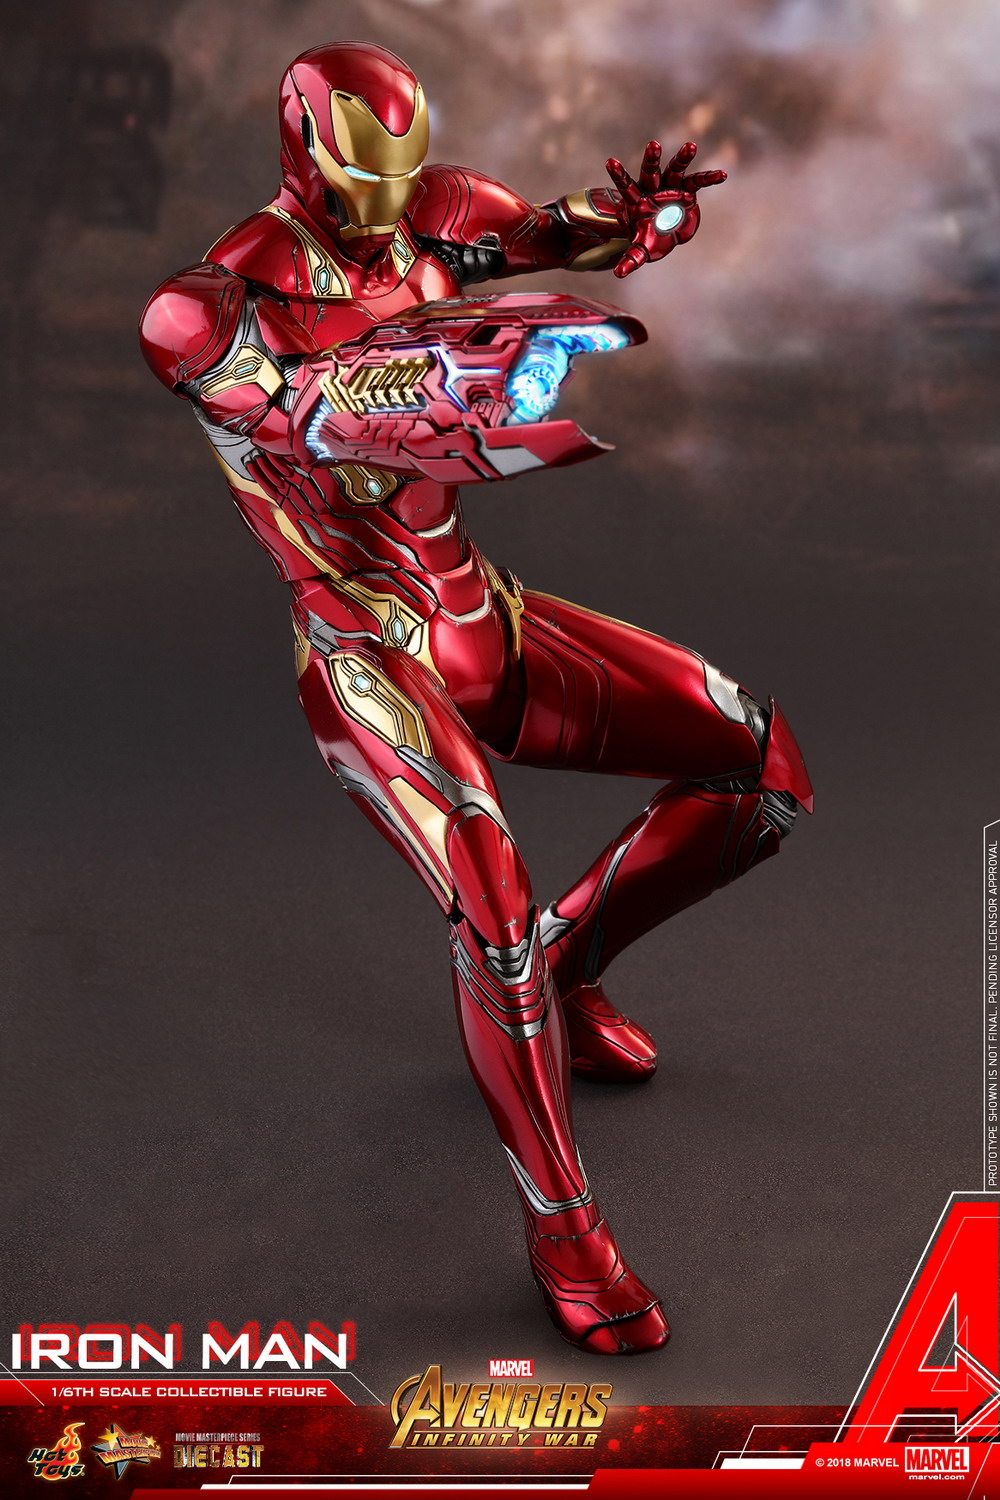 Where To Buy A Hoverboard >> Hot Toys Avengers: Infinity War 1/6th scale Iron Man | Figures.com